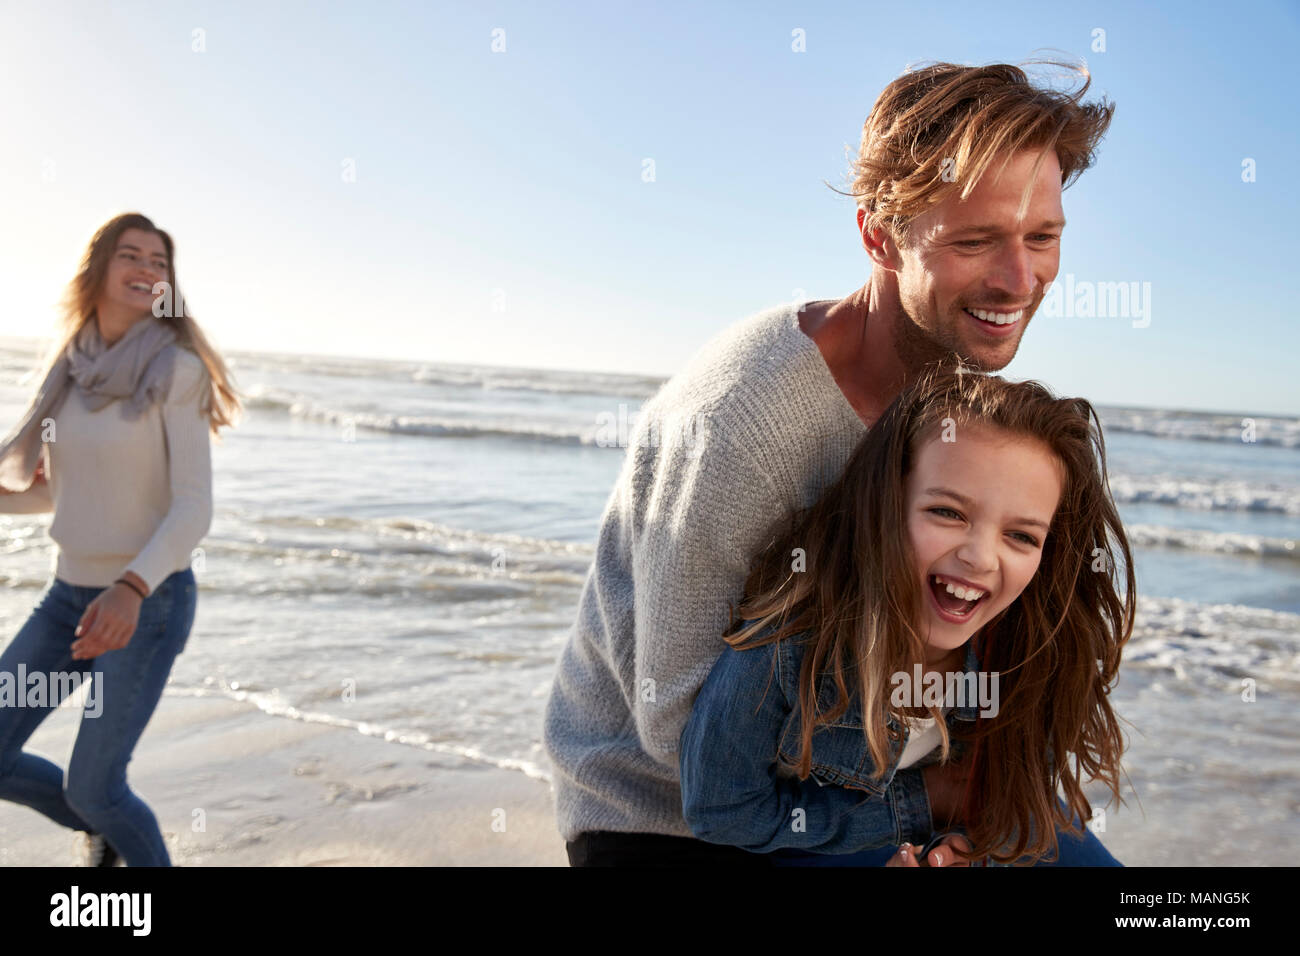 Parents With Daughter Having Fun On Winter Beach Together - Stock Image